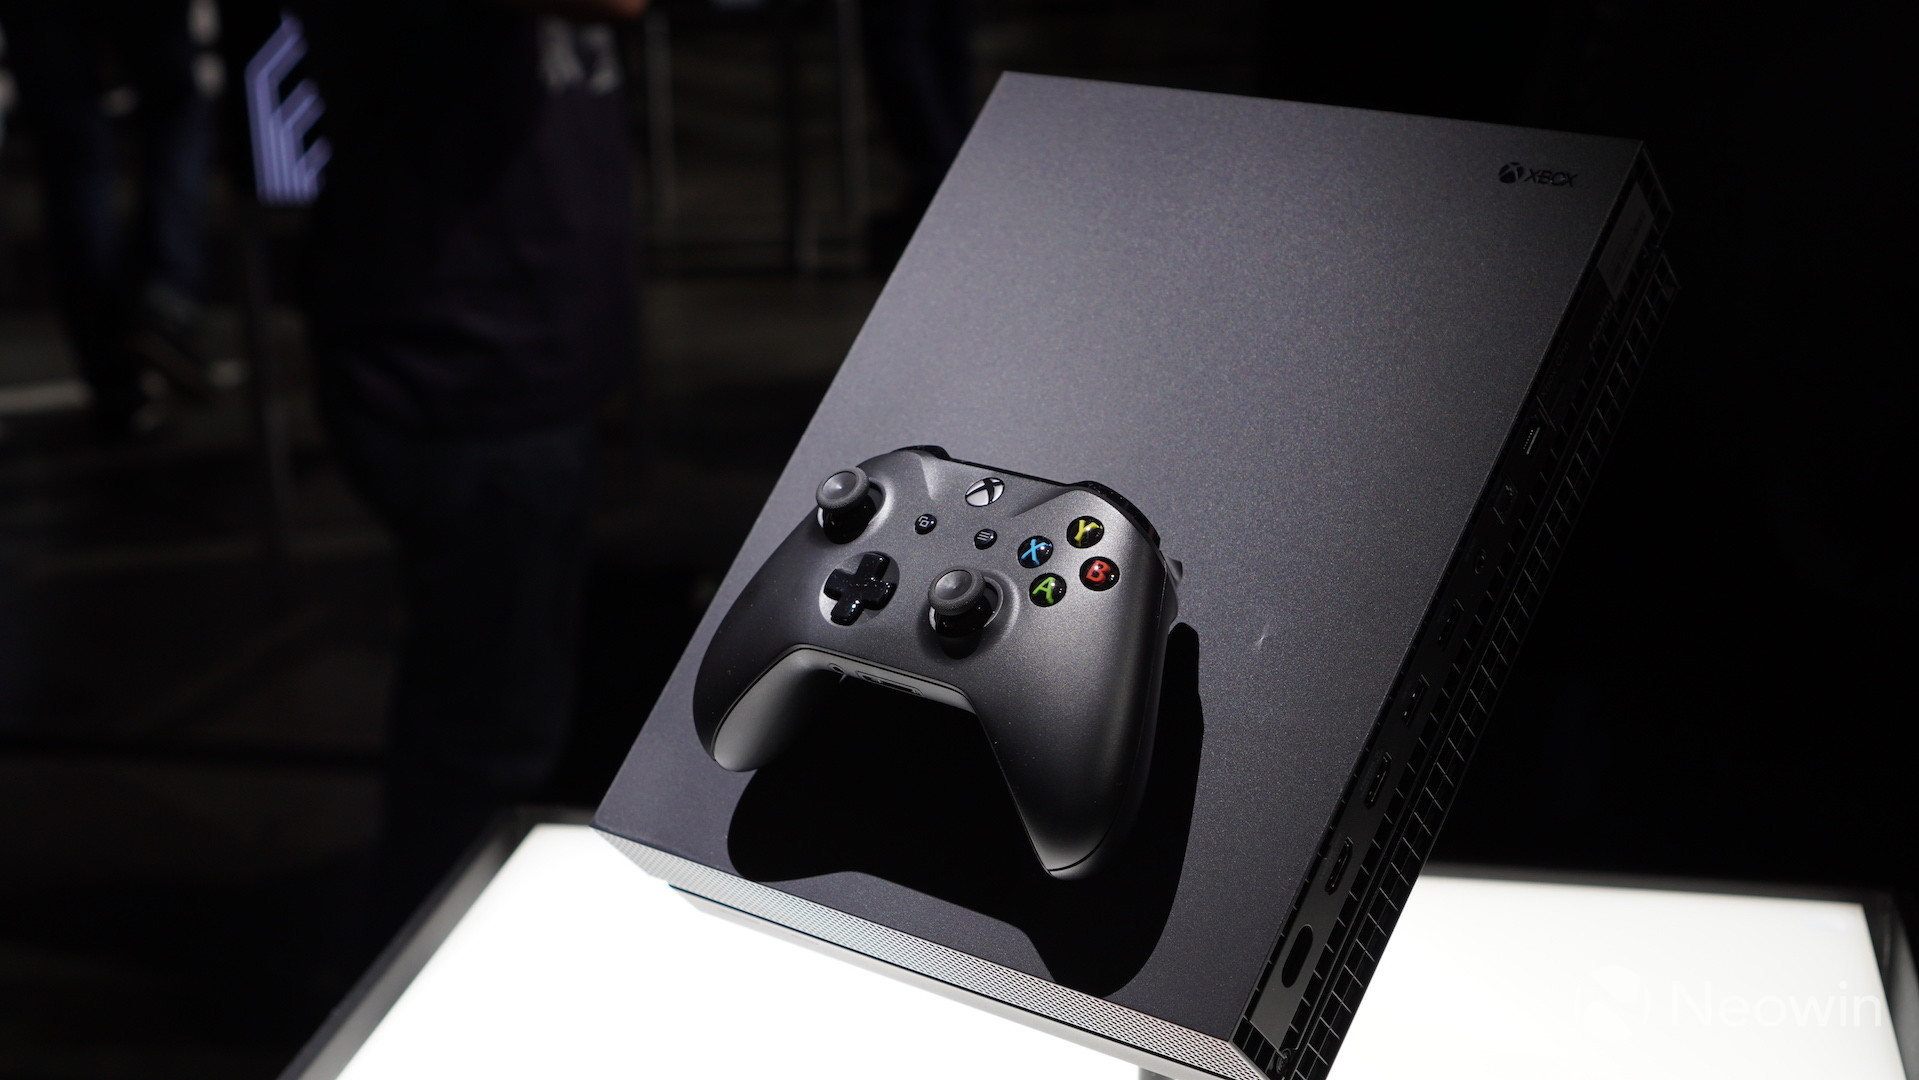 Where is our Xbox One X review?